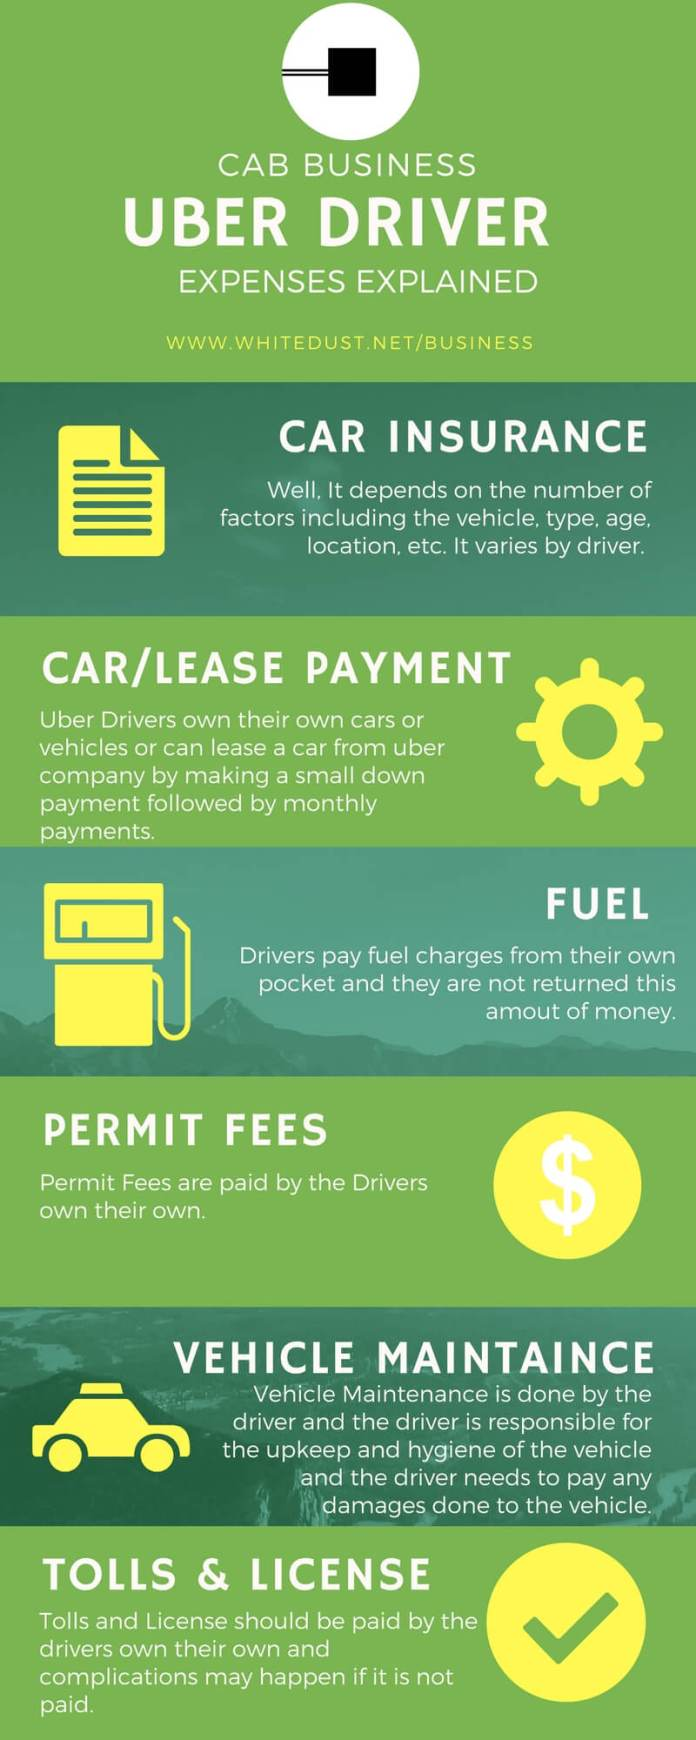 uber's driver expenses